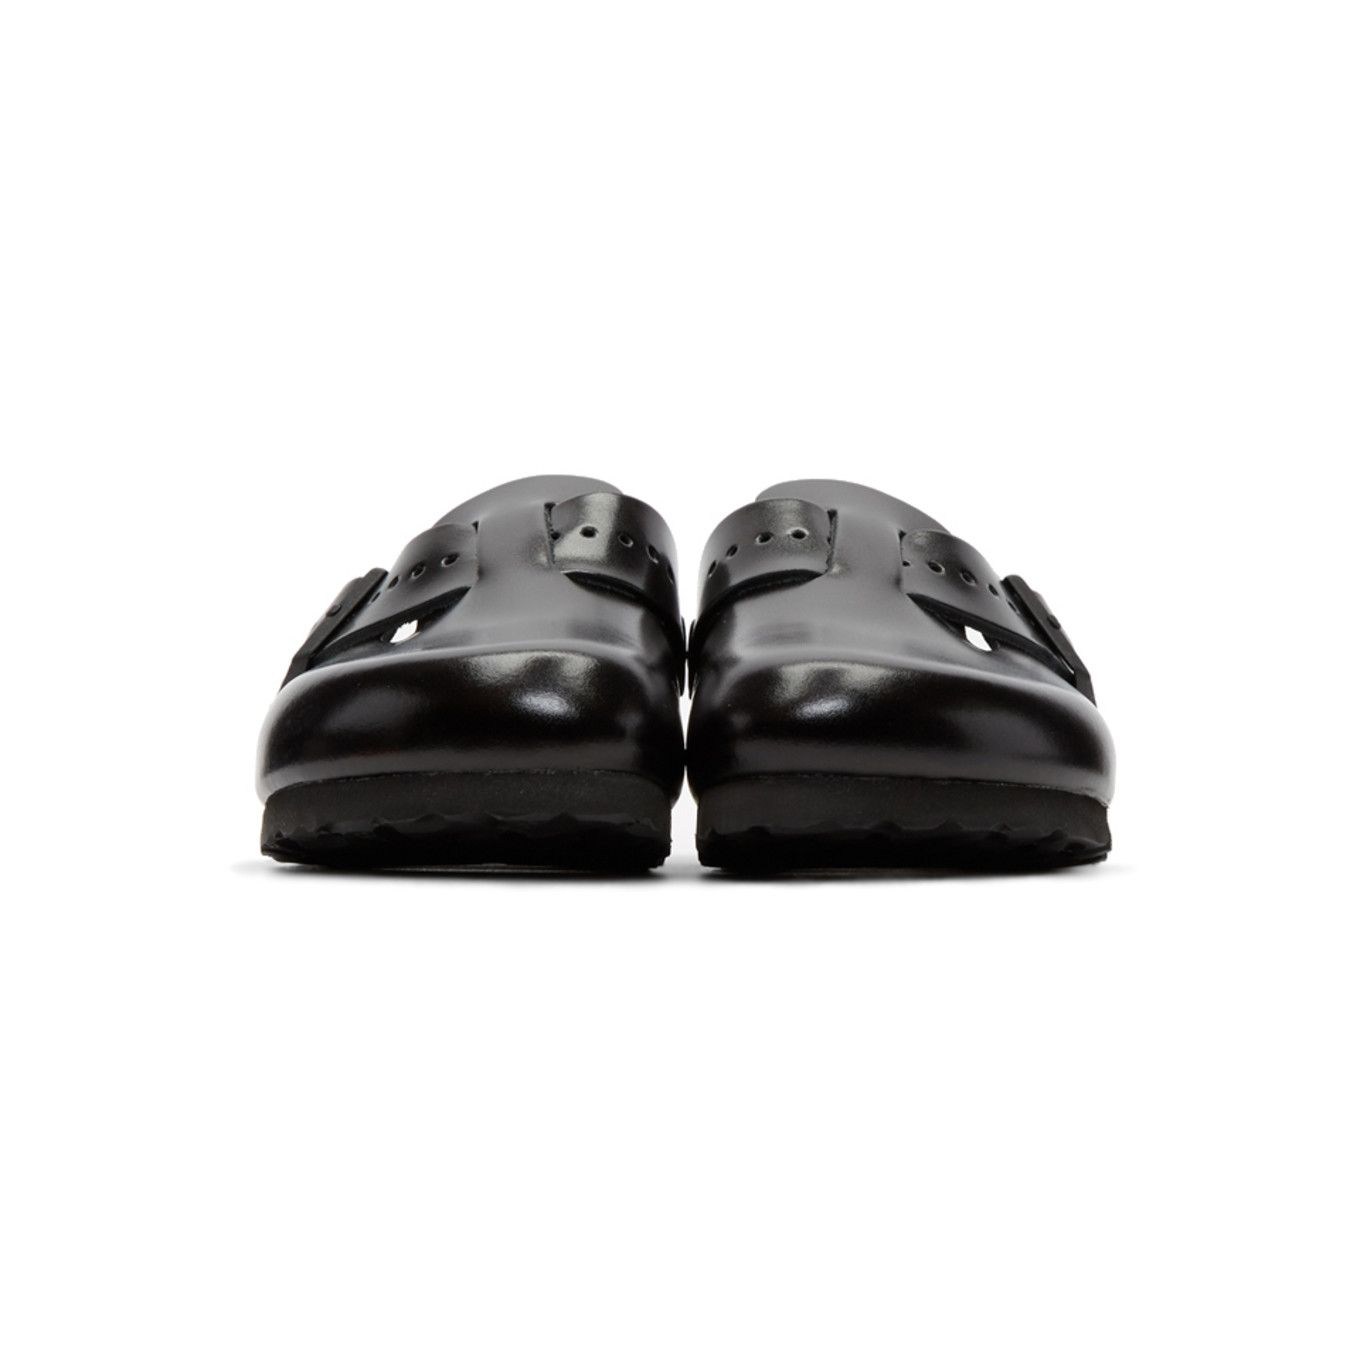 Black BIRKENSTOCK Edition Leather Boston Slip-On Loafers Rick Owens xfDsXS